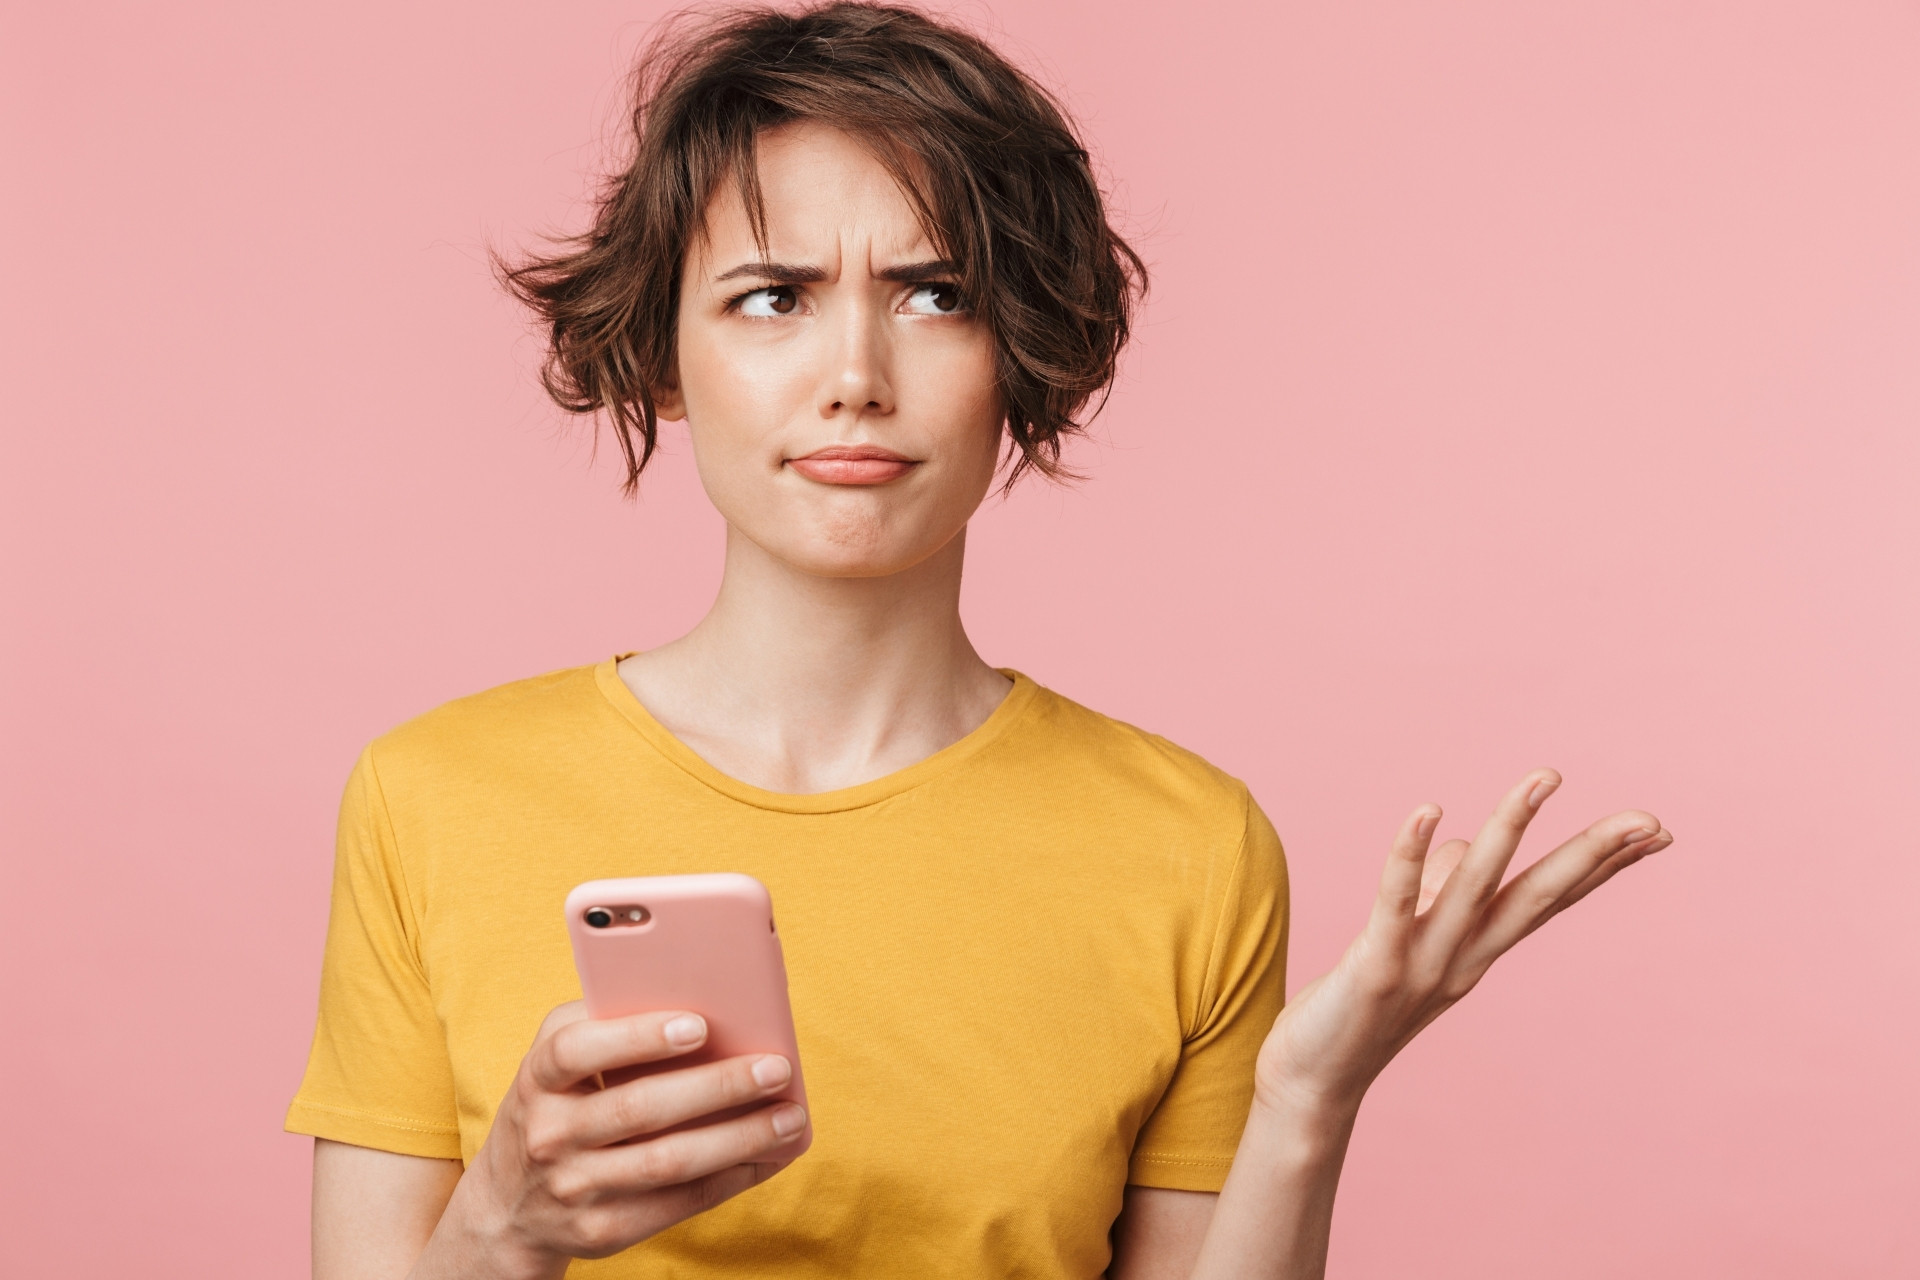 Confused woman with mobile phone